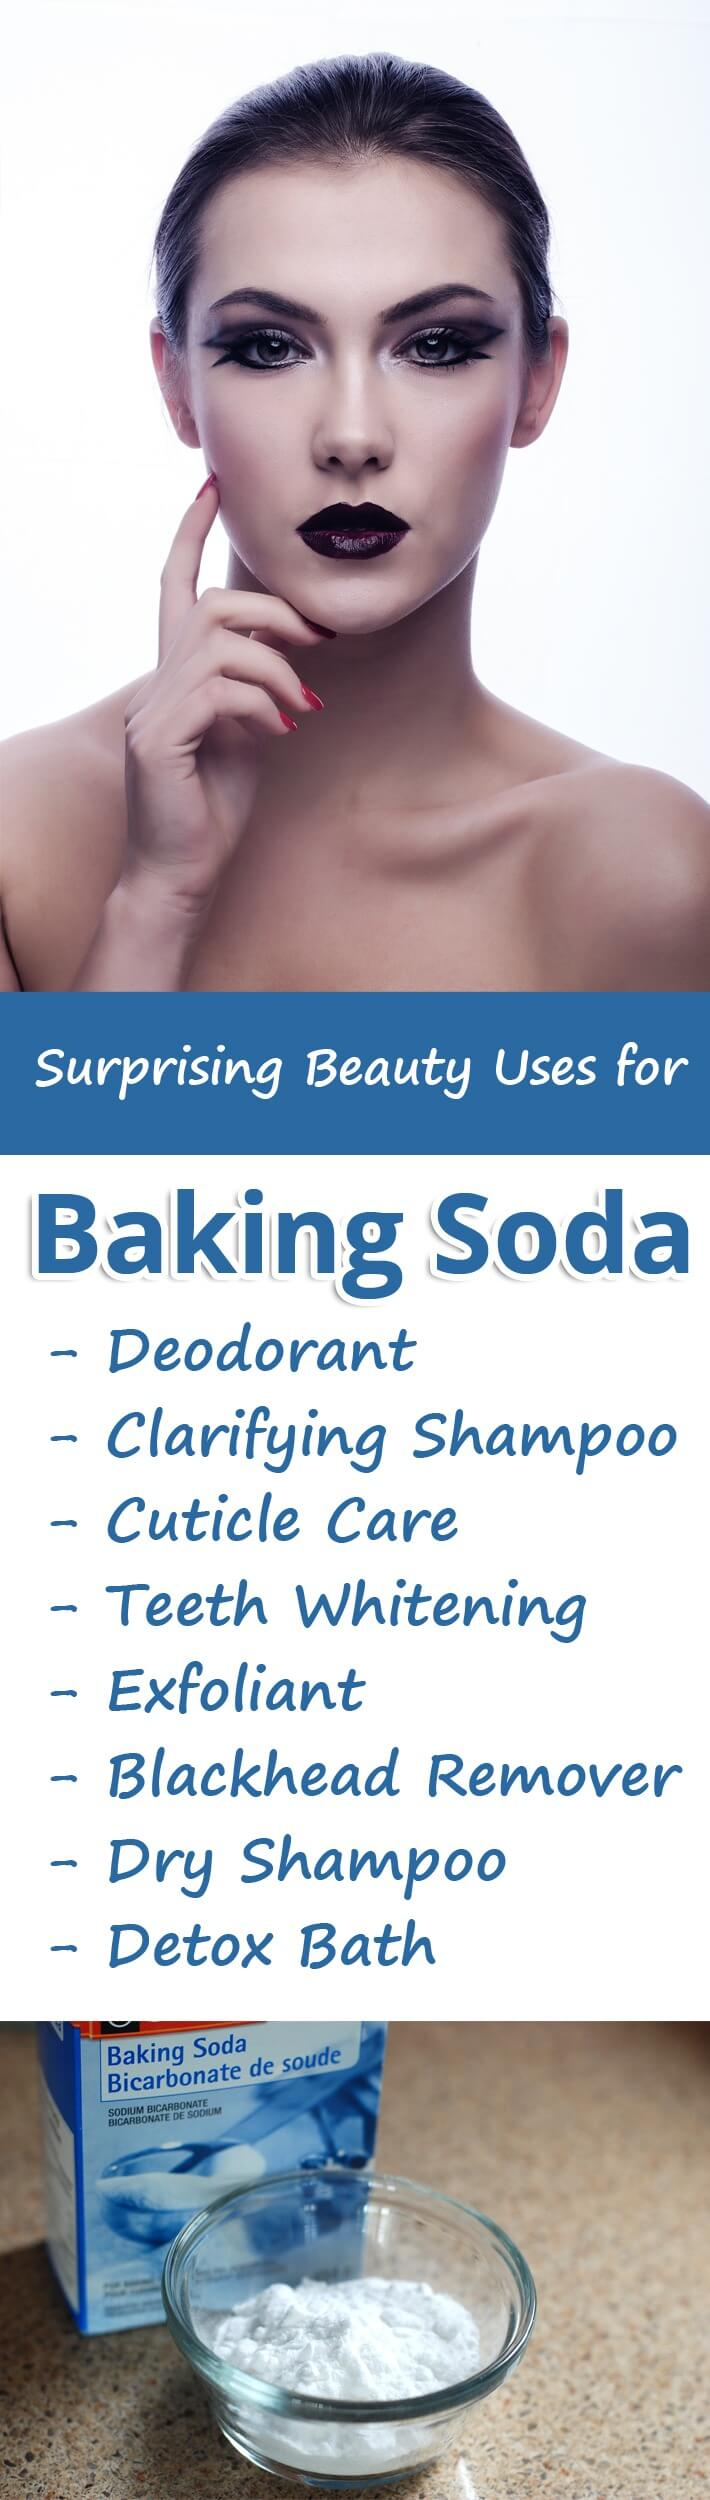 Surprising Beauty Uses for Baking Soda